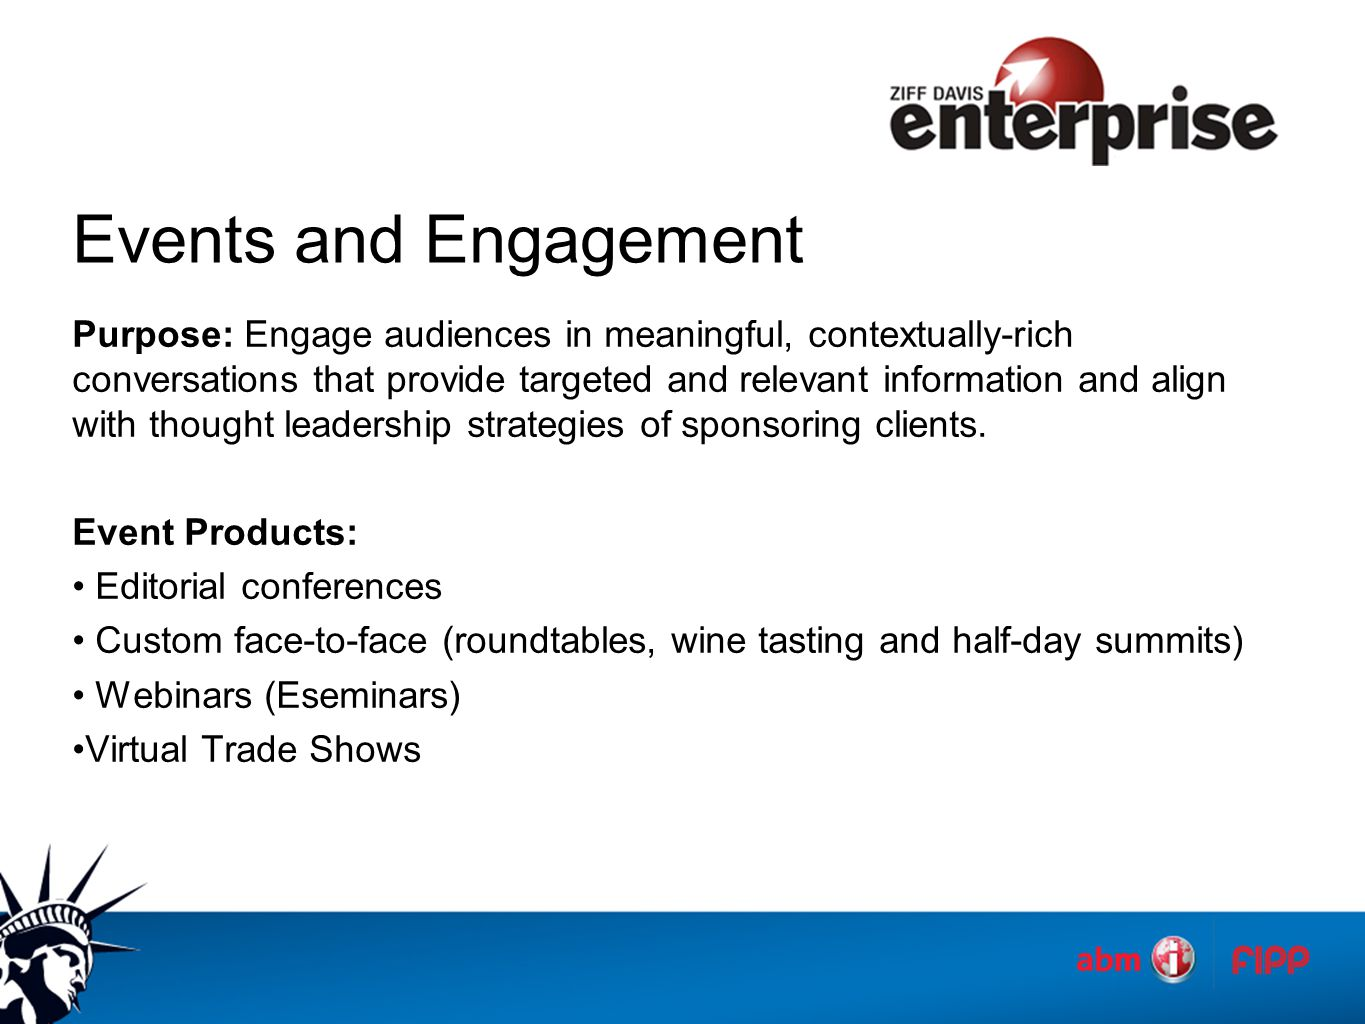 Events and Engagement Purpose: Engage audiences in meaningful, contextually-rich conversations that provide targeted and relevant information and alig